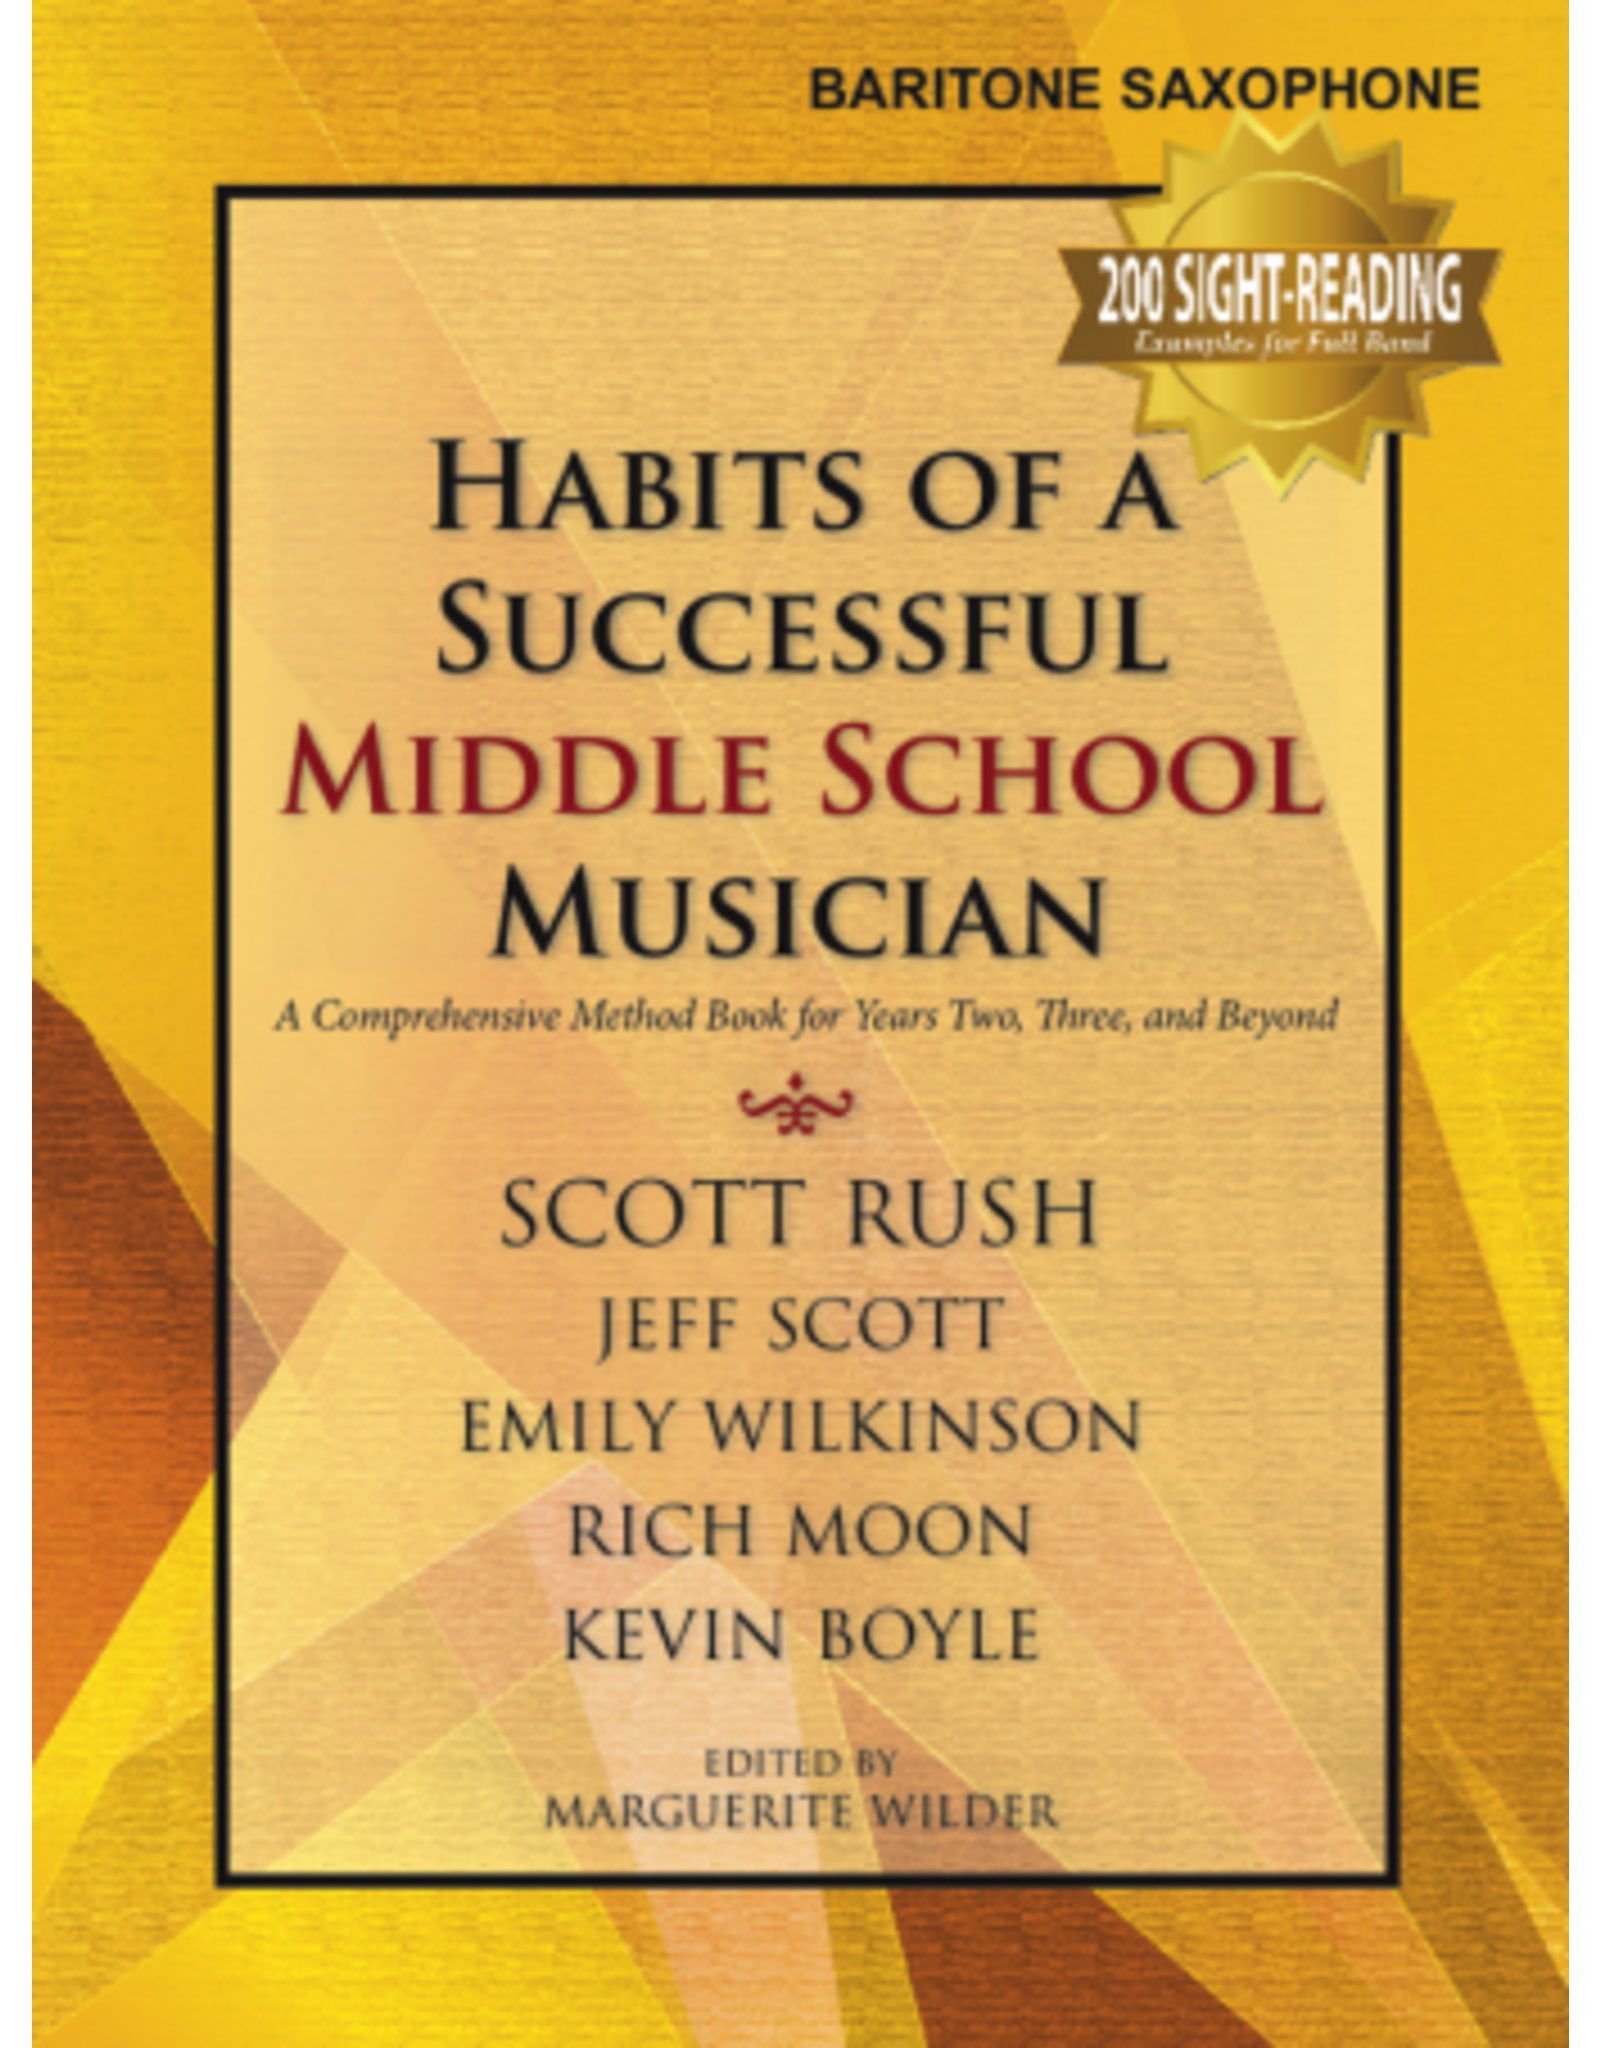 GIA Publications Habits of a Successful Middle School Musician-Baritone Saxophone